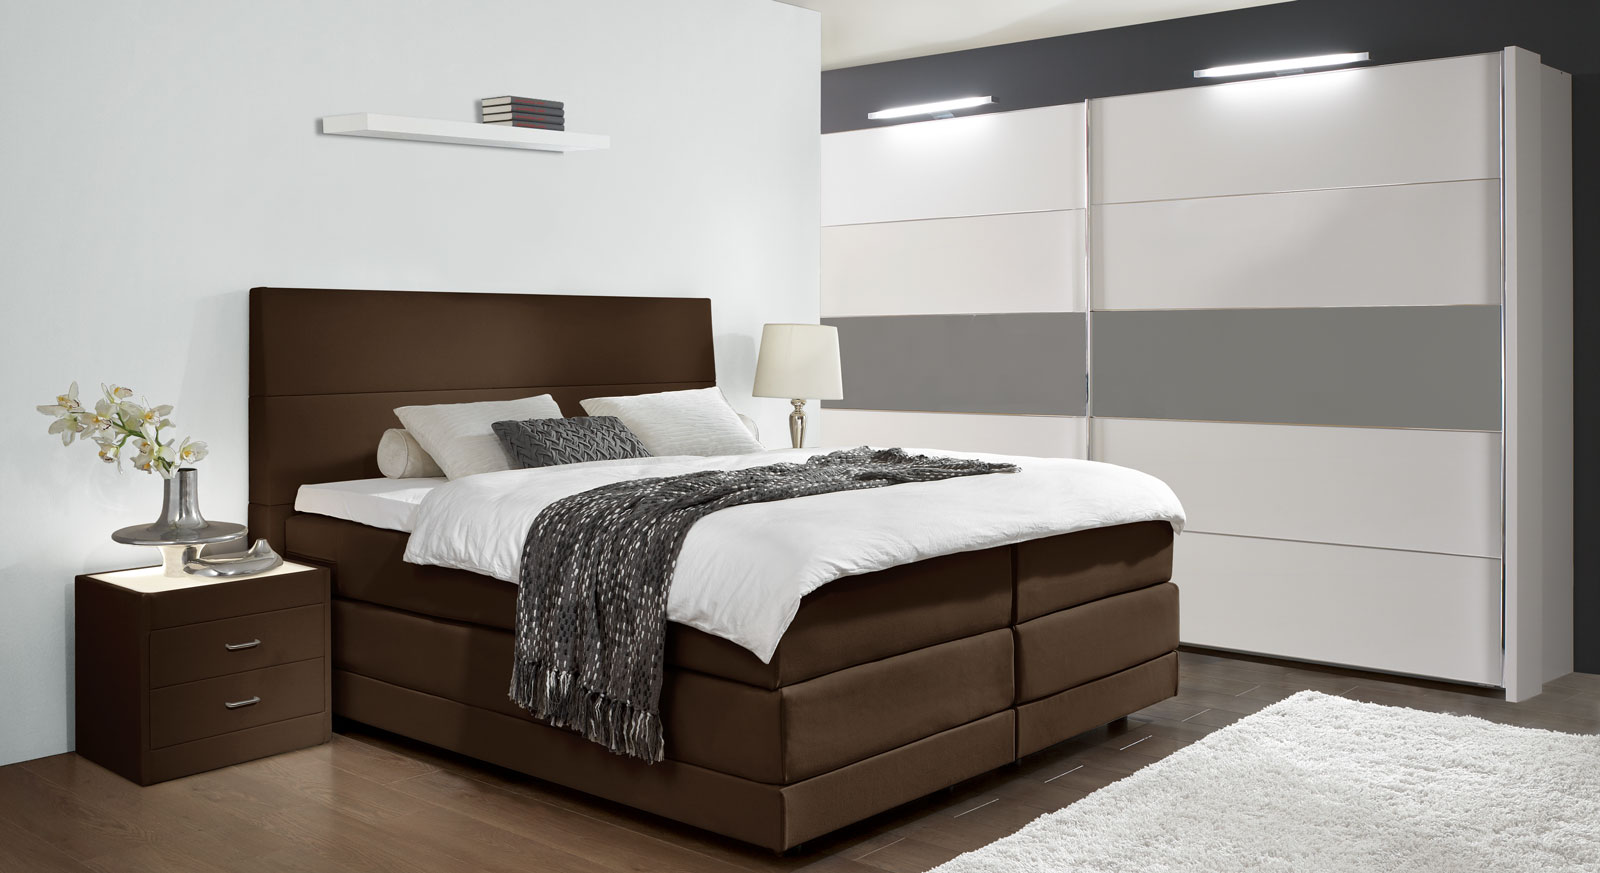 boxspring betten ausergewohnliche m bel und heimat design inspiration. Black Bedroom Furniture Sets. Home Design Ideas